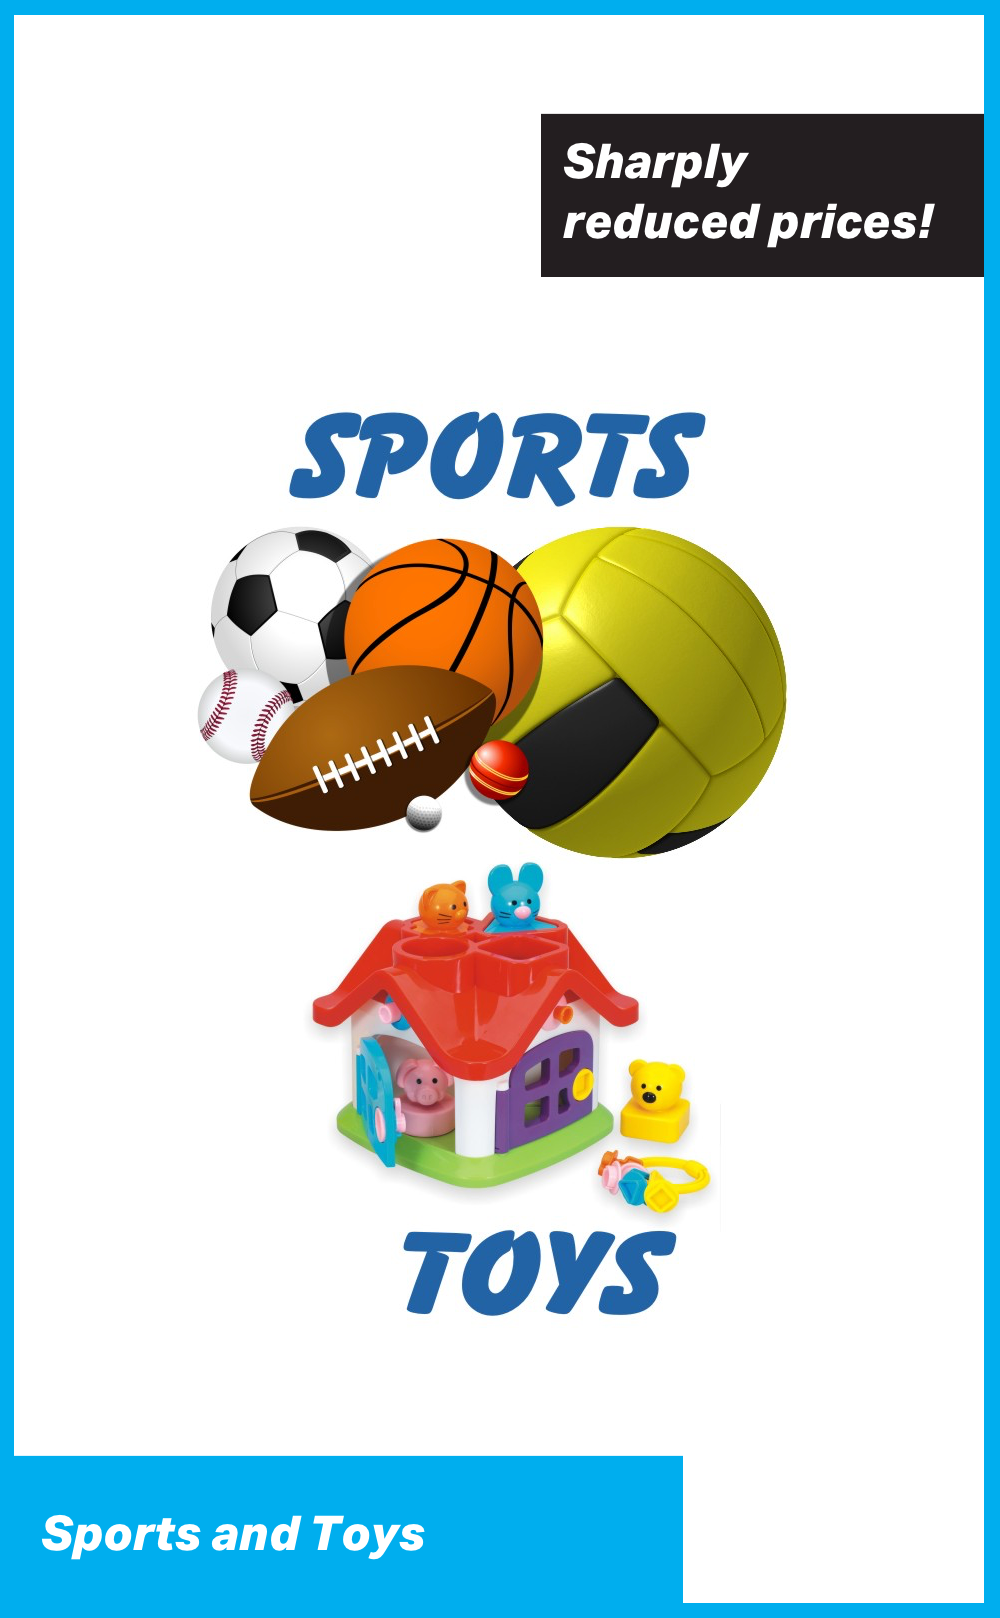 Sports and Toys at Sharply Reduced Prices!